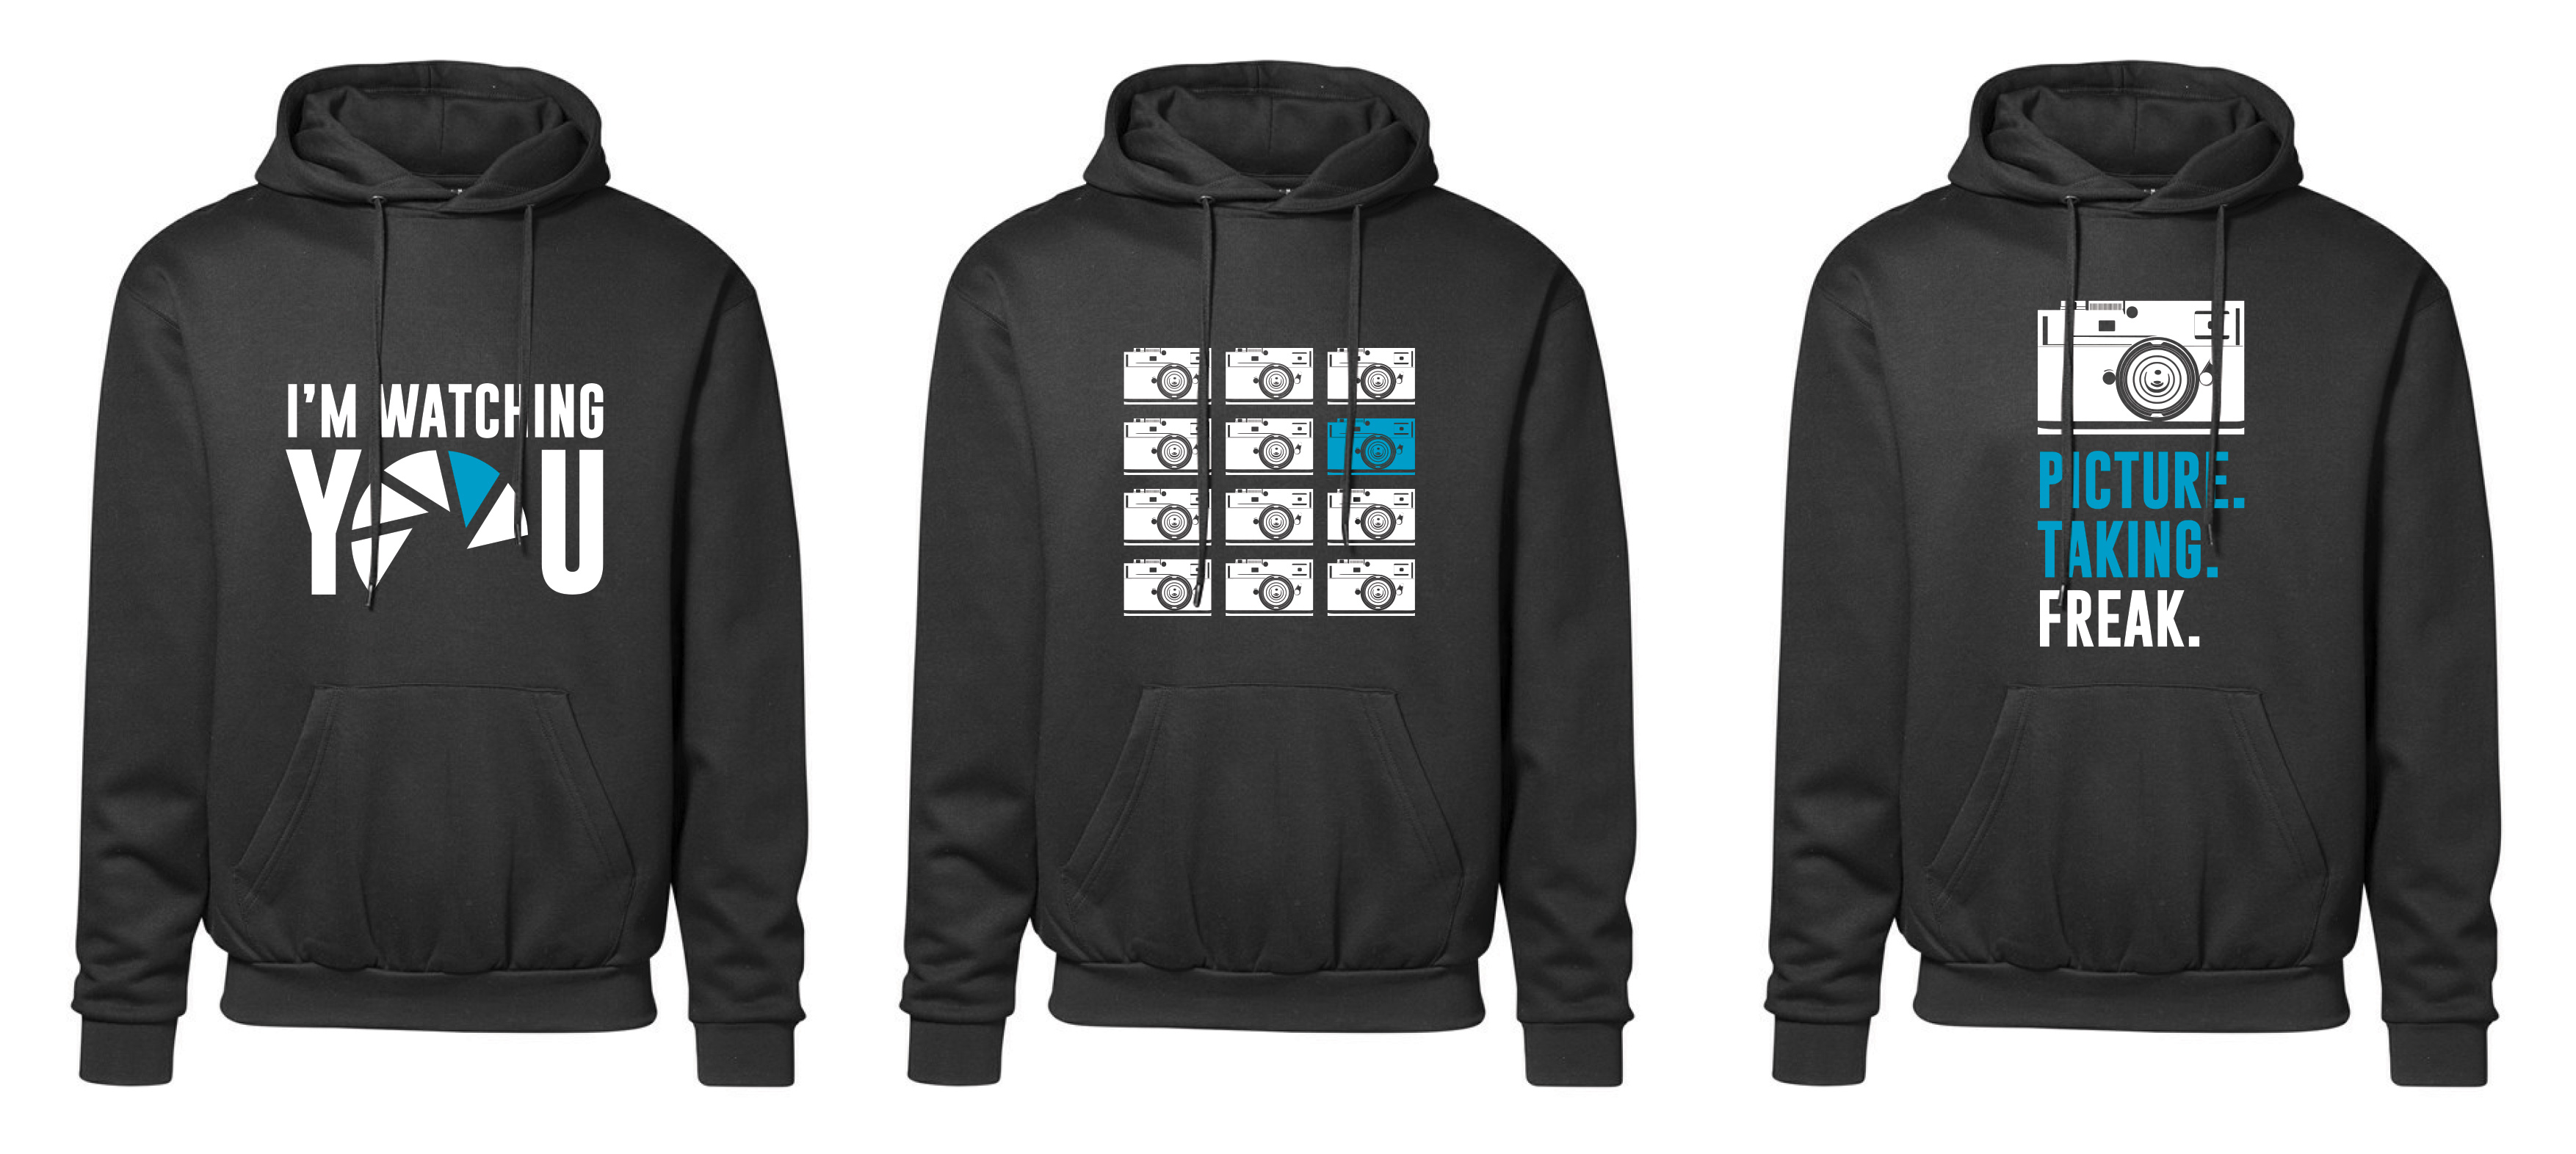 UP_hoodies